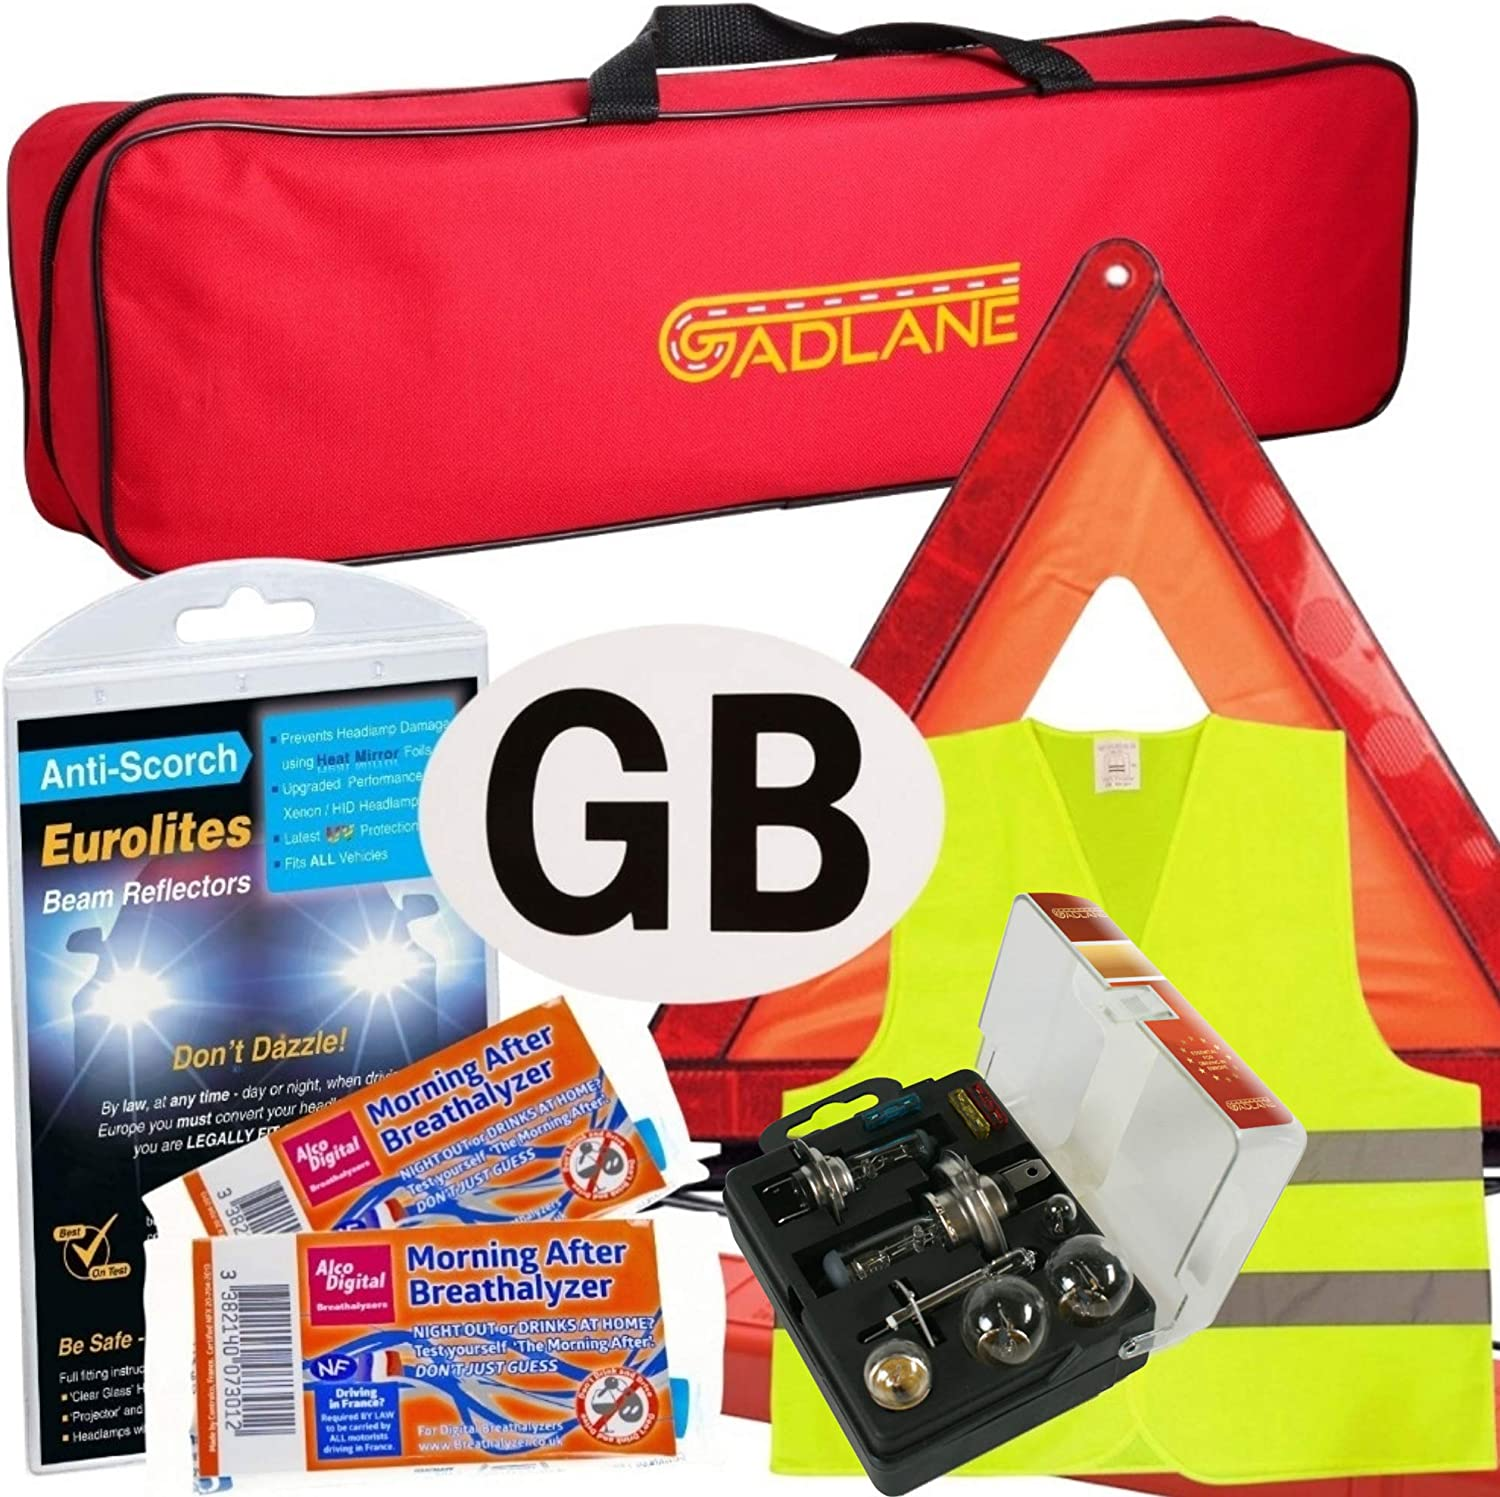 Kit For Driving Traveling to France With twin NF Approved Breath Alcohol Test Breathalyser Easy Storage Zipped Bag